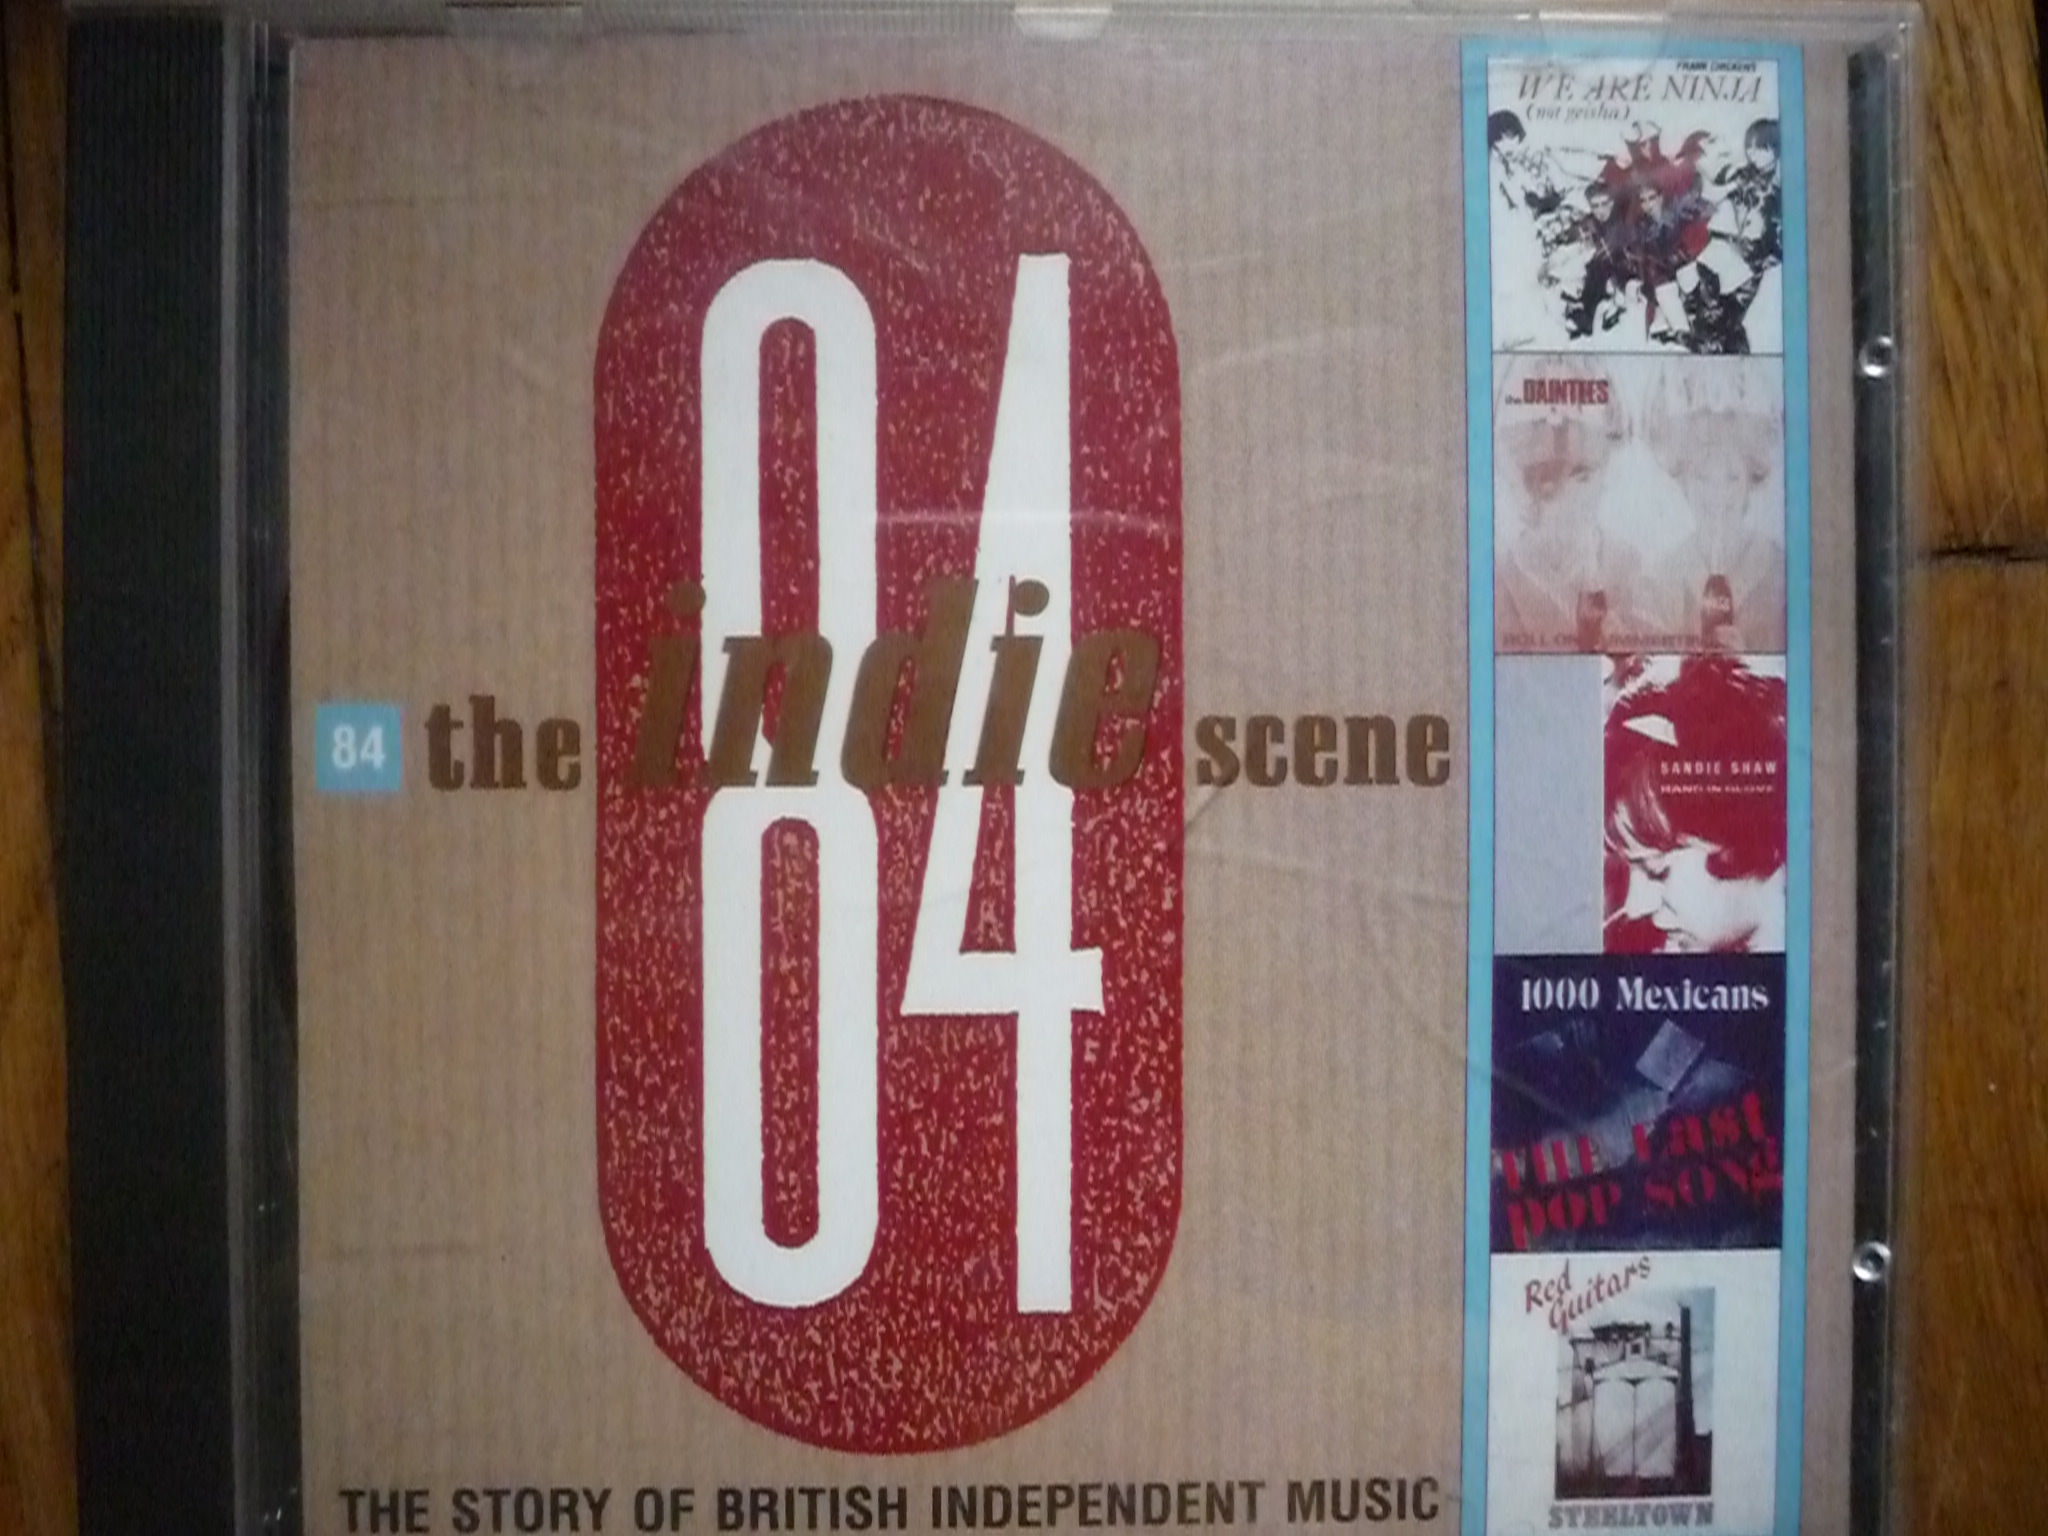 V.A. THE INDIE SCENE 84 R (INDEPENDENT MUSIC) CD